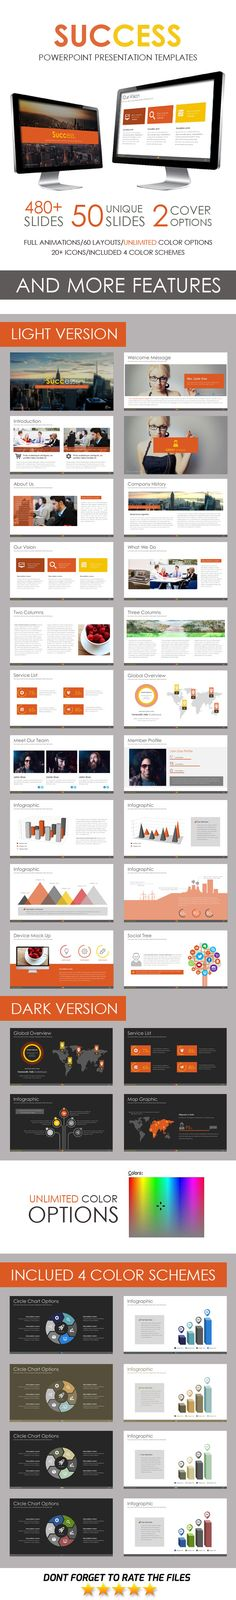 Power  Powerpoint Template  Business Powerpoint Templates